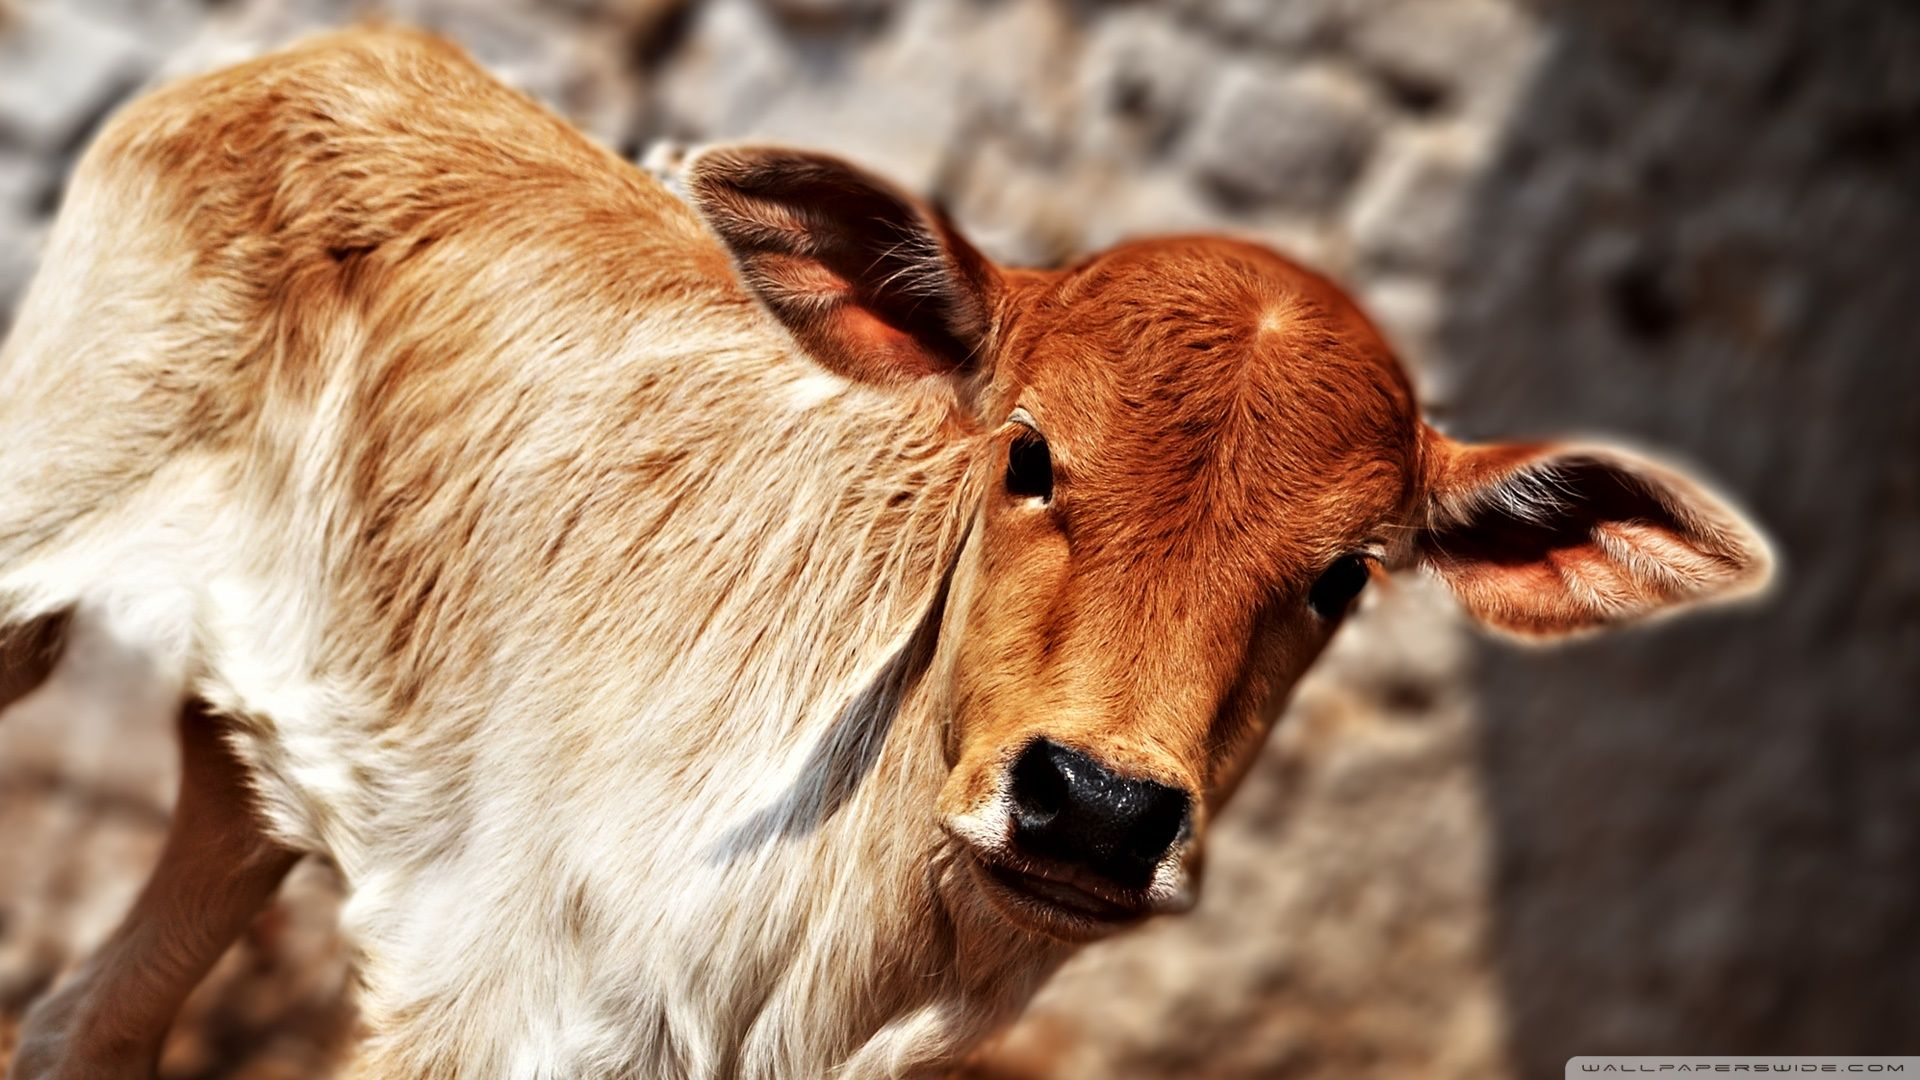 Cows Wallpapers Downloadeer Simply The Best Cute Animals Puppies Cow Wallpaper Cute Animals With Funny Captions